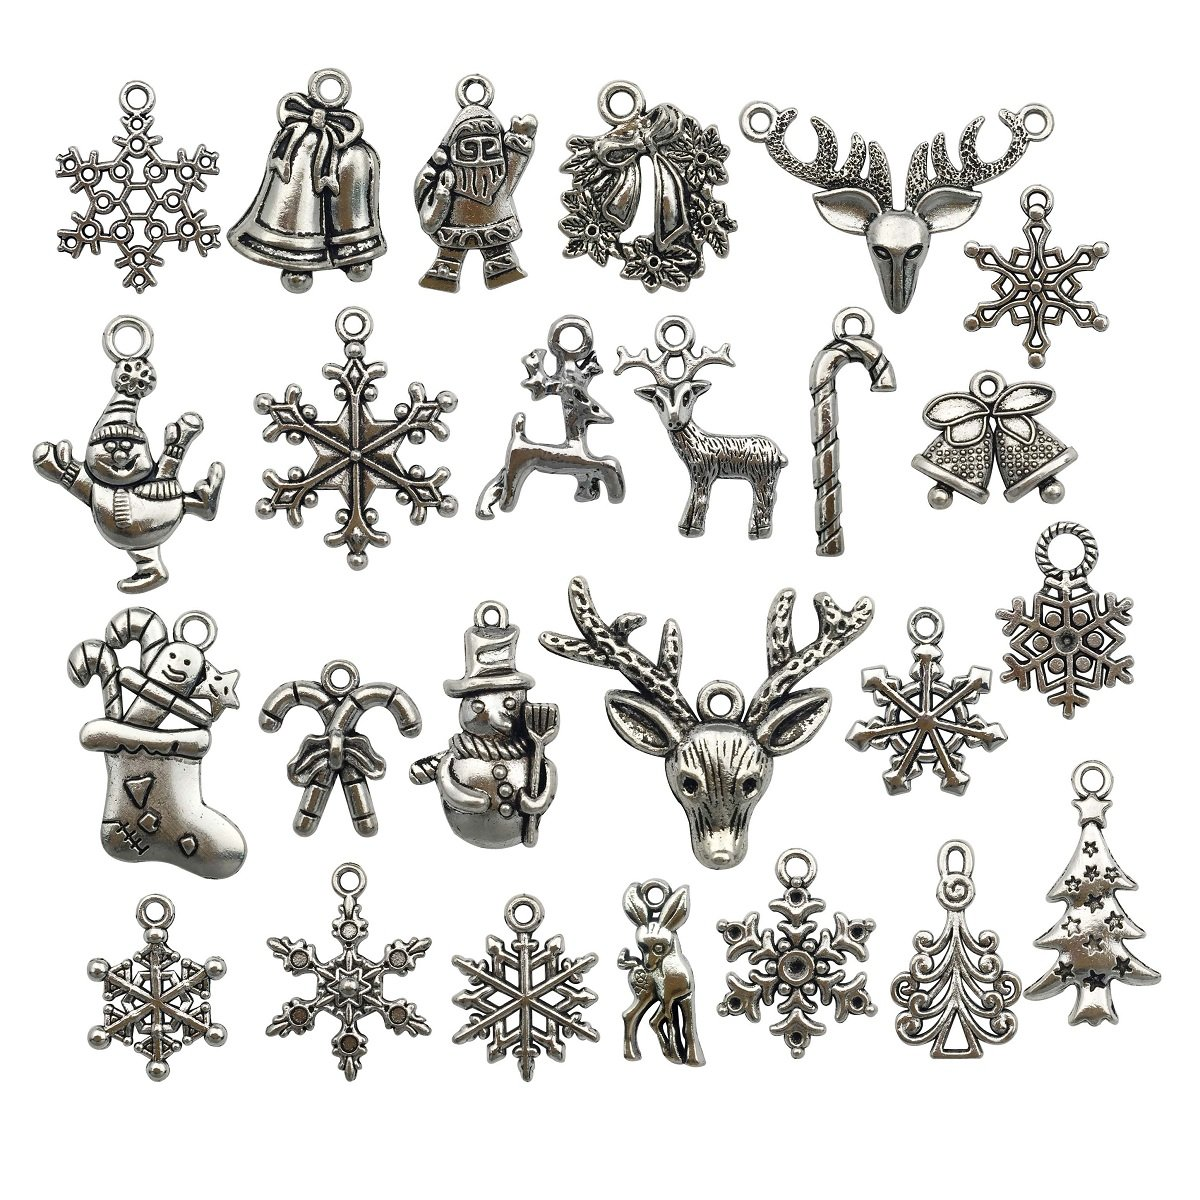 Halloween Charm-100g(about 55-60pcs) Antique Silver Halloween Collection Craft Supplies Charms Pendants for Crafting, Jewelry Findings Making Accessory For DIY Necklace Bracelet (Halloween Collection) iloveDIYbeads